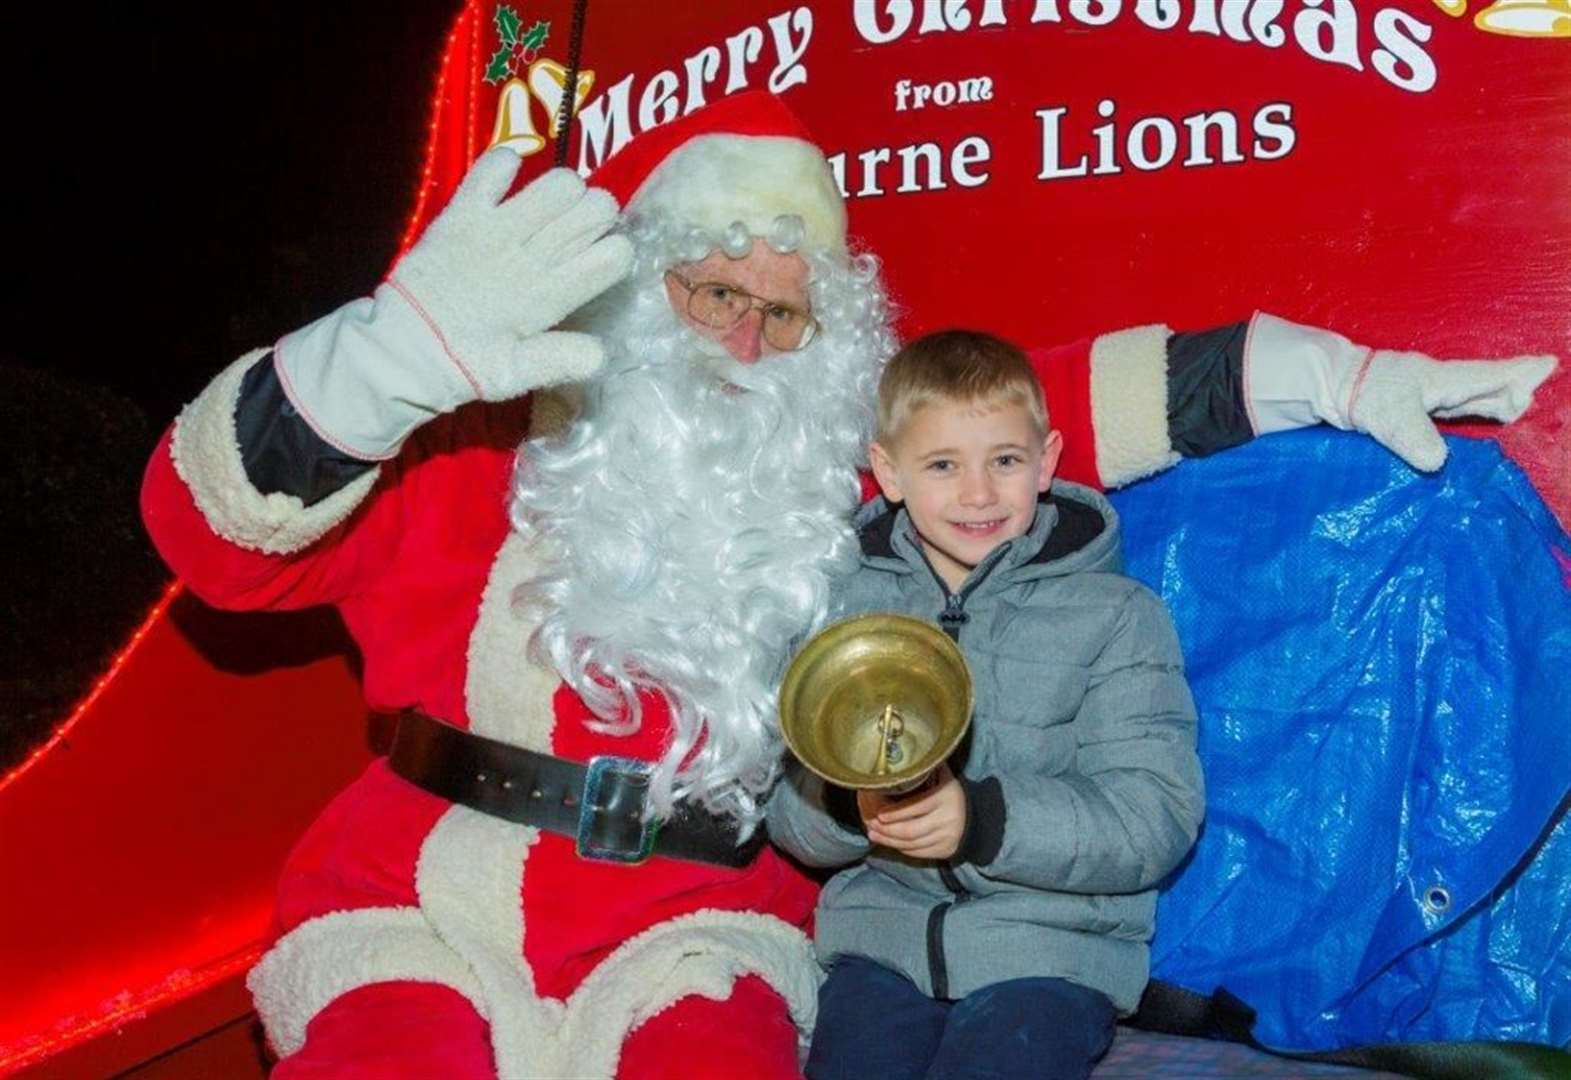 Lions sleigh route will be roaringly good fun